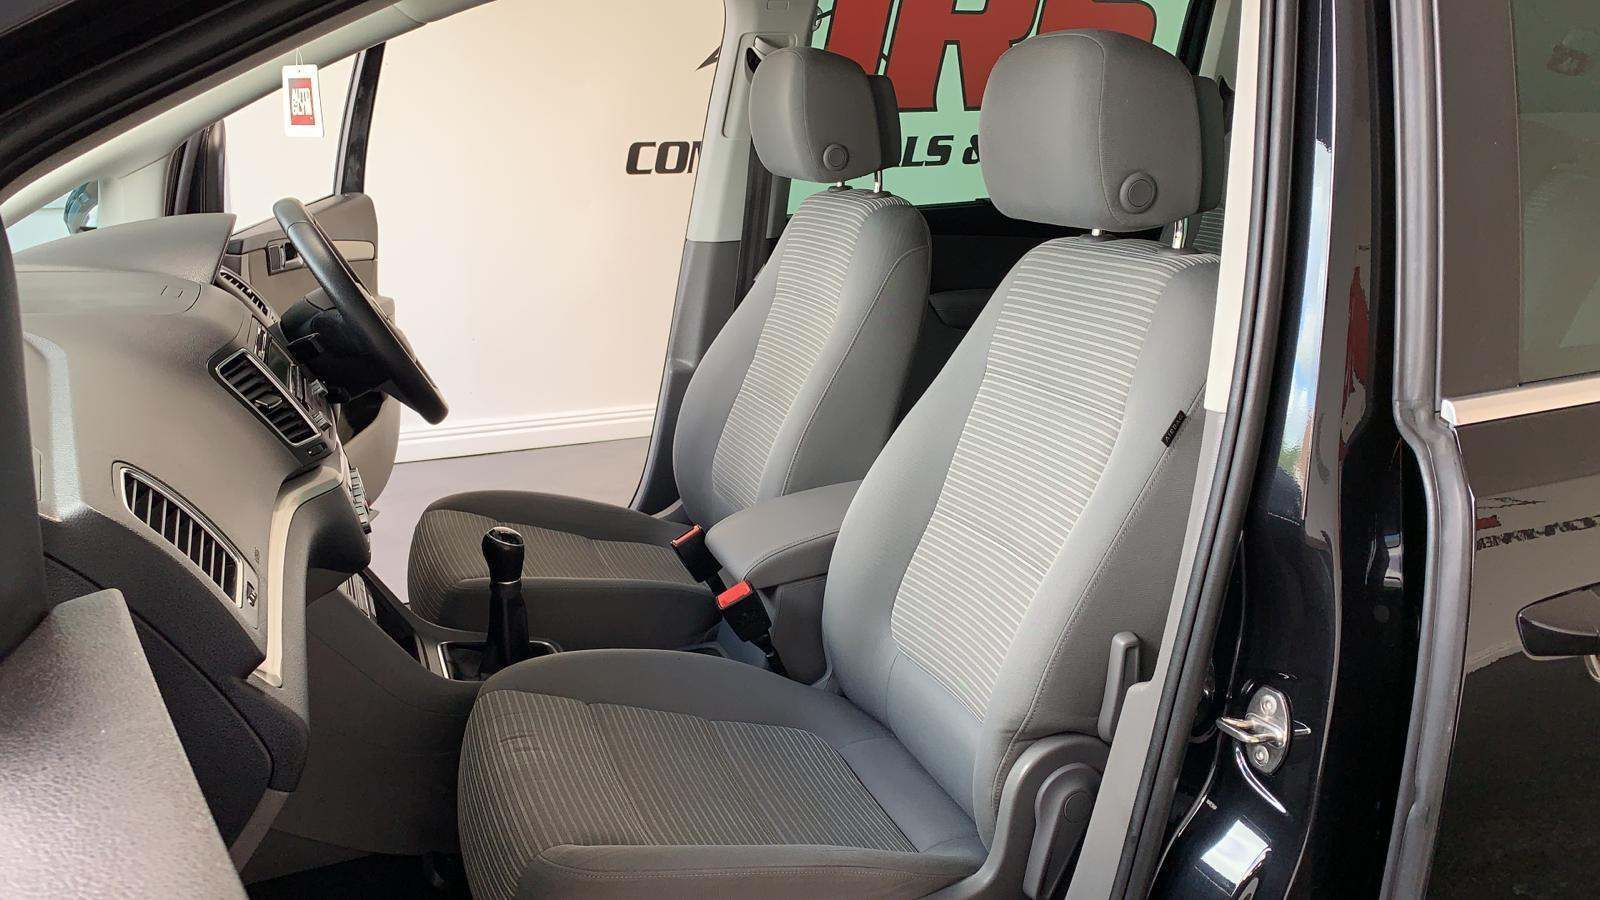 2015 SEAT Alhambra 2.0 TDI Ecomotive SE (s/s) Diesel Manual **7 Seats – Privacy Glass** – J R S Commercials And Cars Dungannon full